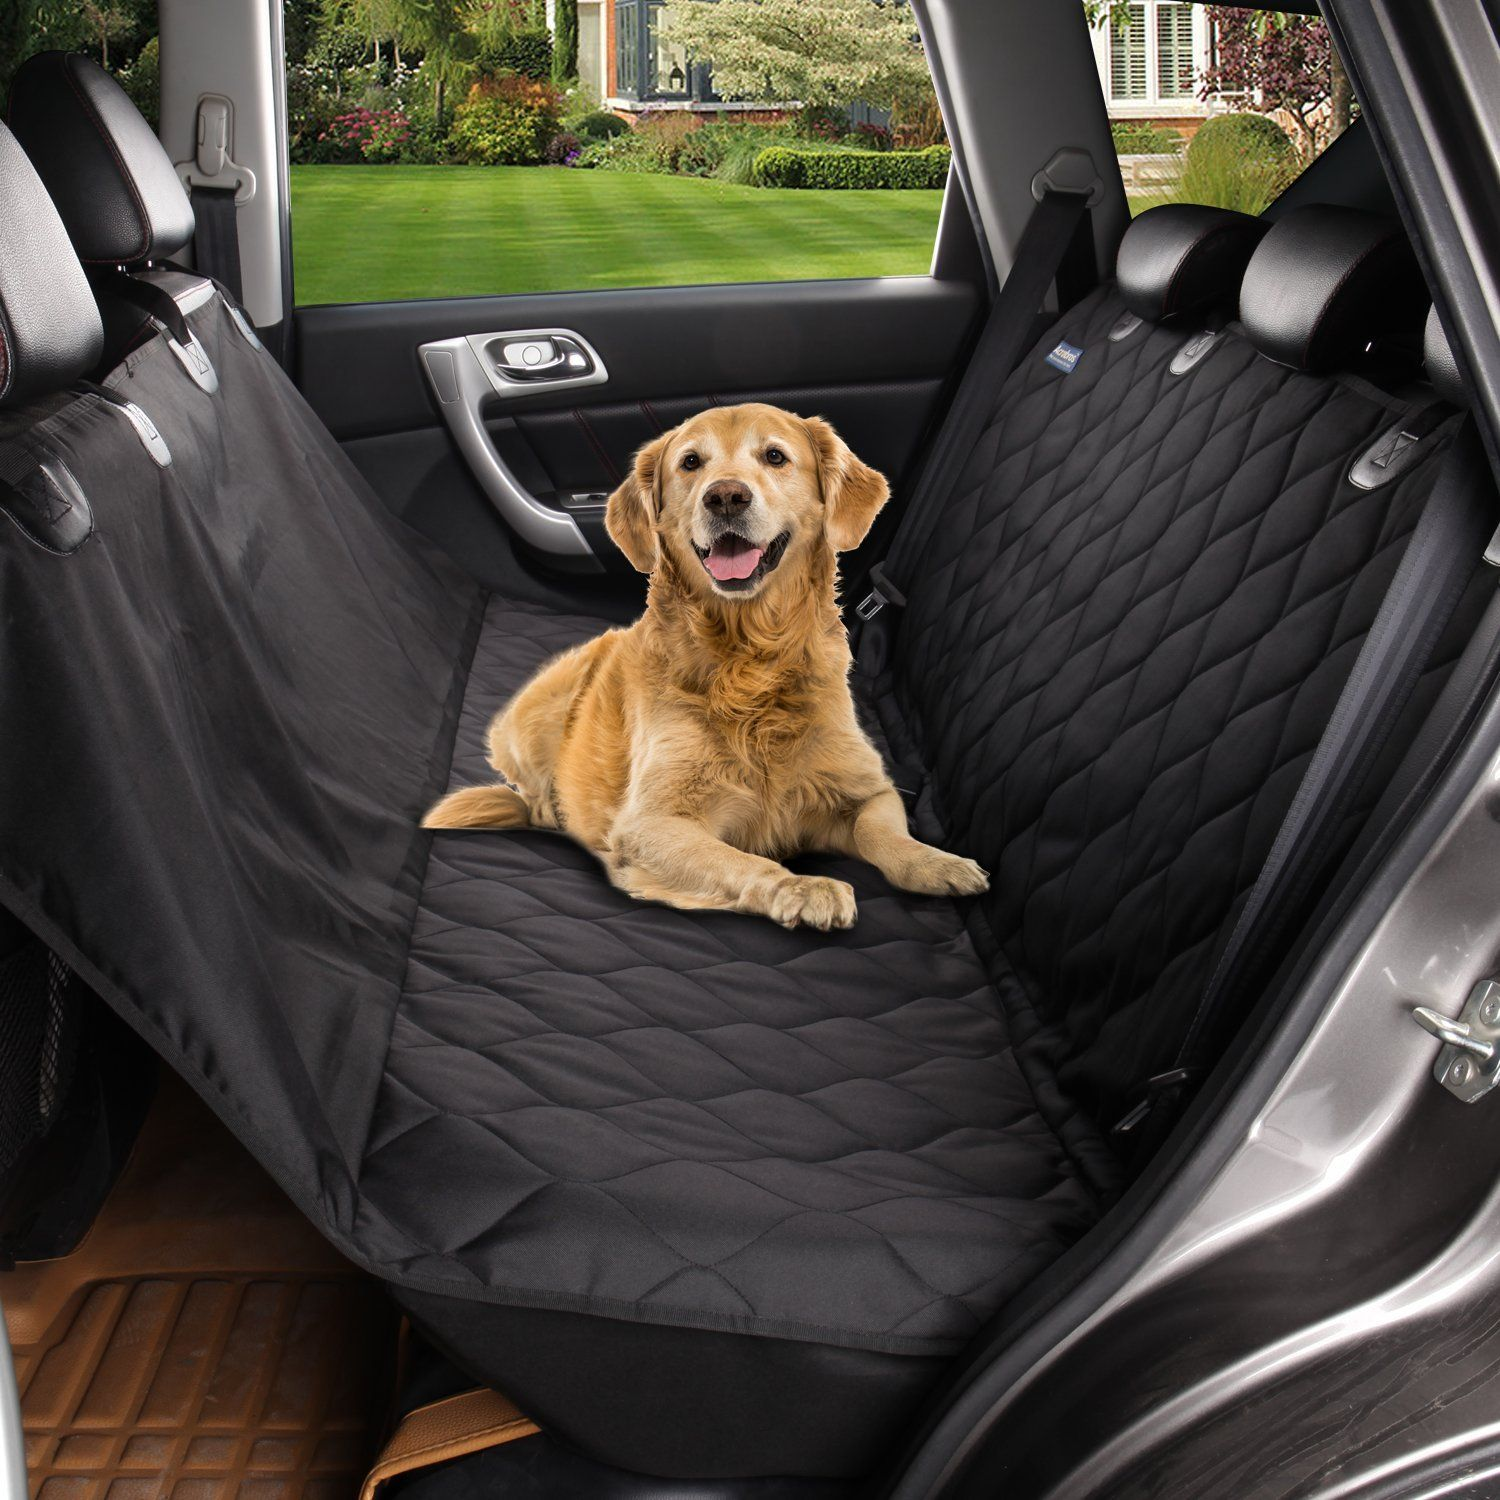 mat home non cover viewing dog seat waterproof carriers item quilted accessories hammock mesh protector blanket car slip from pet back in window